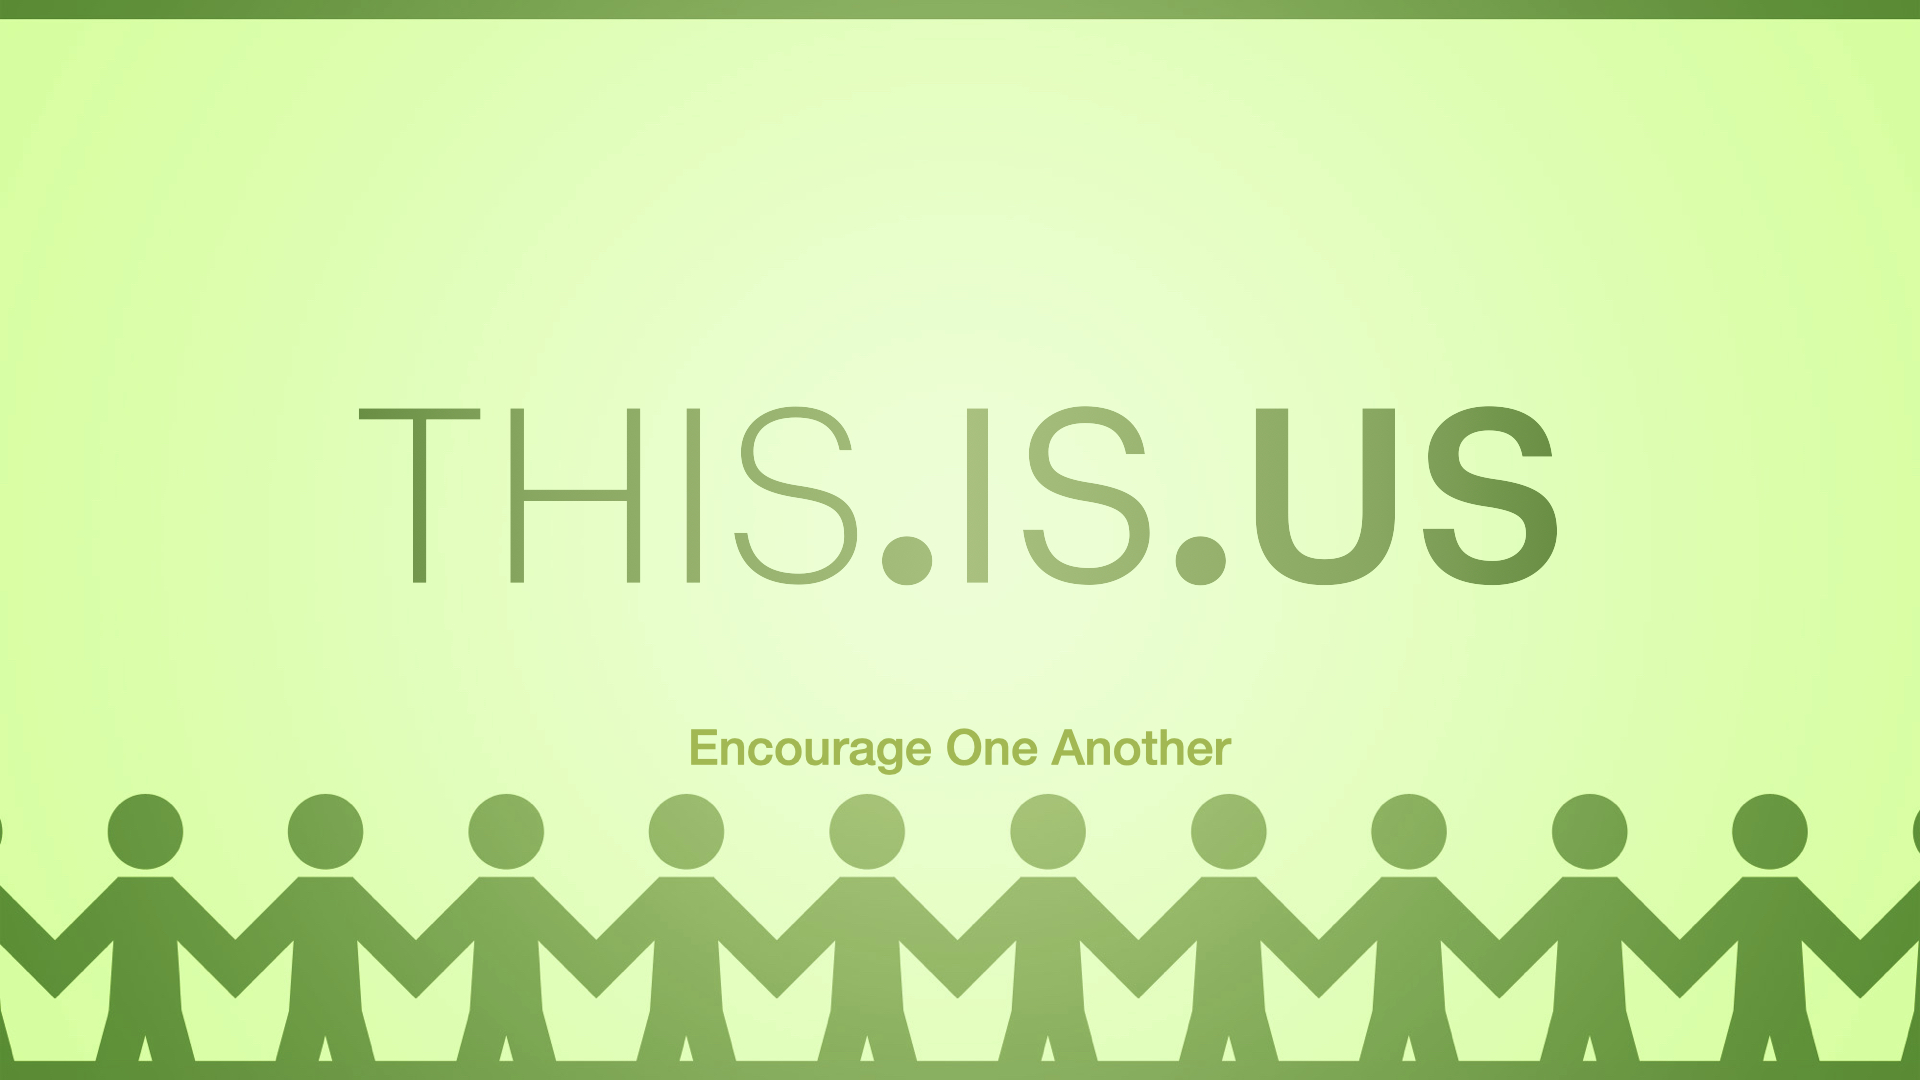 THISISUS  Encourage One Another